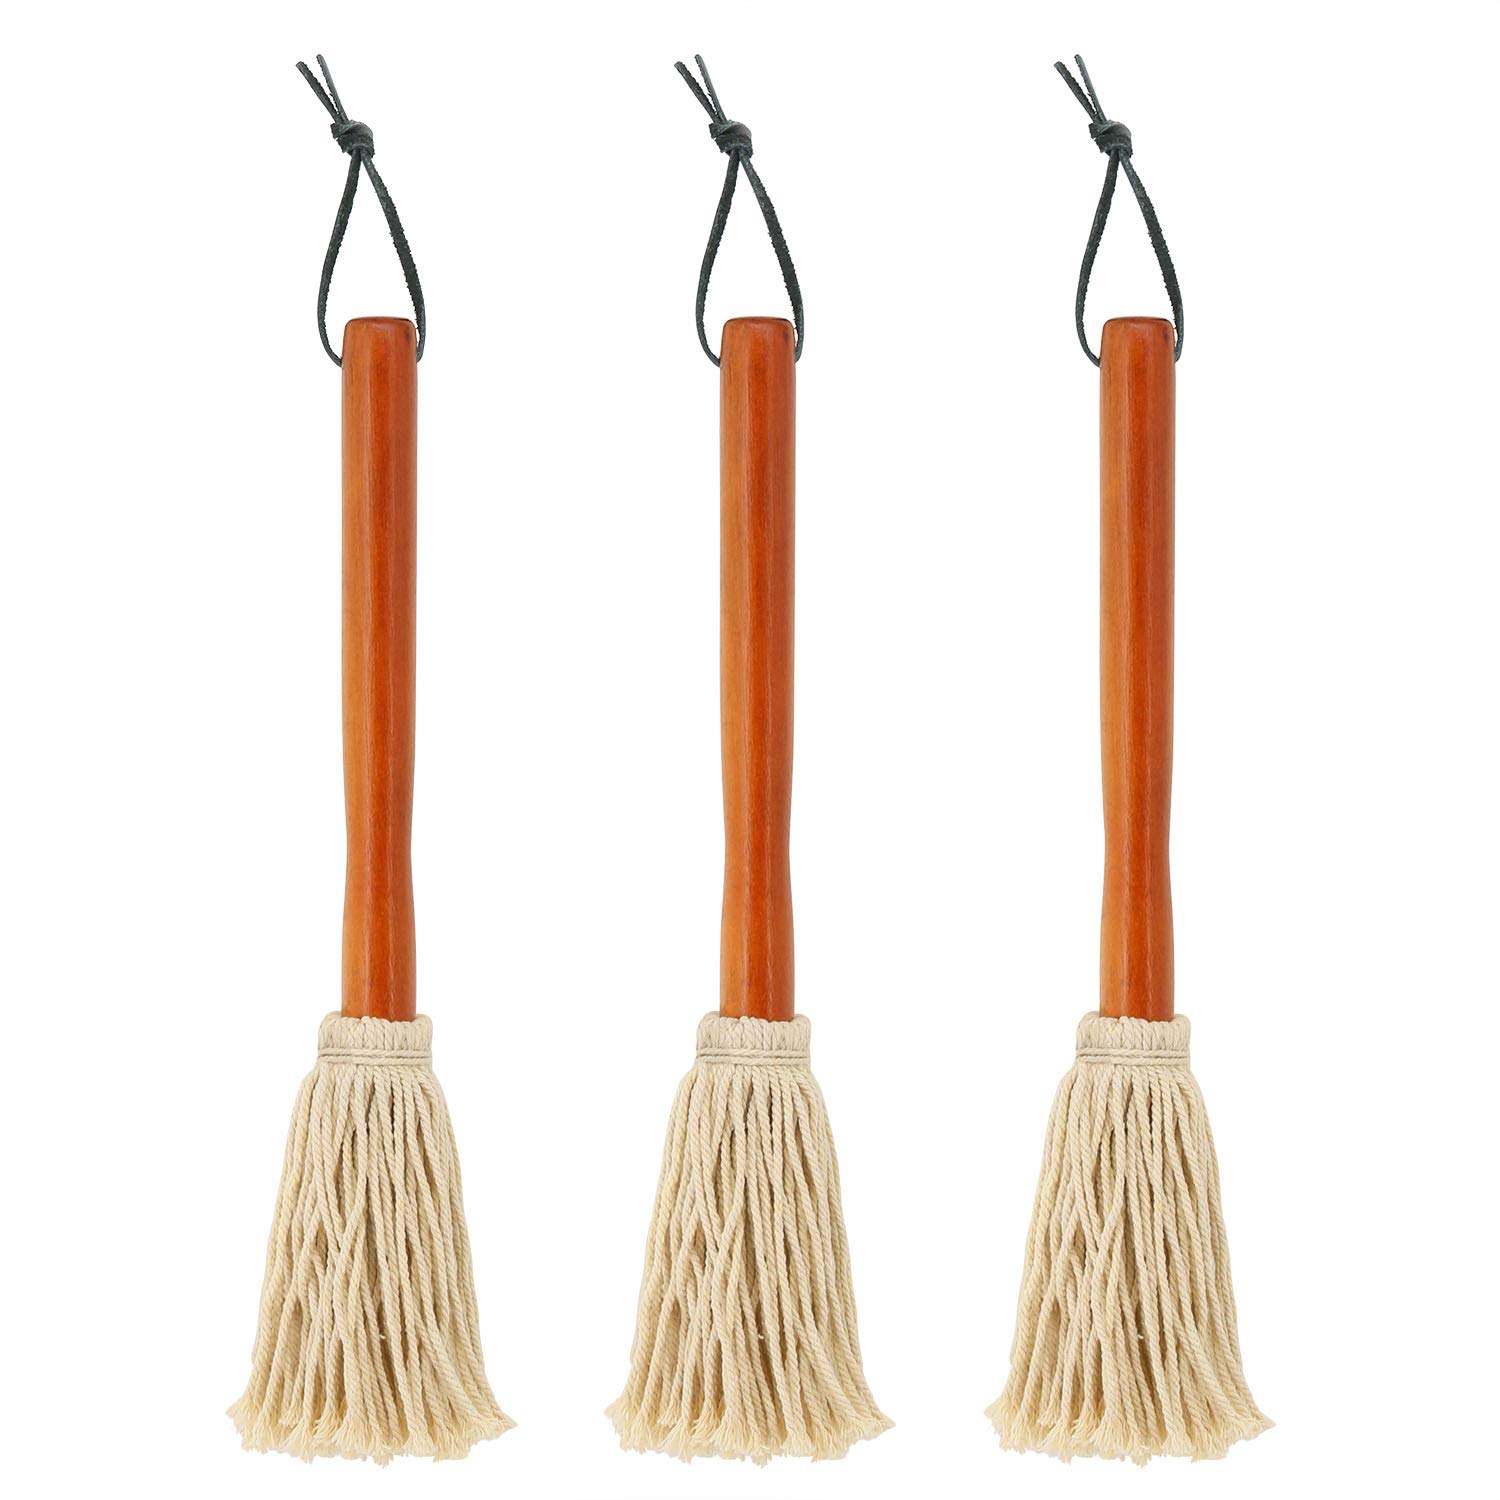 12'' BBQ Basting Mops for Roasting or Grilling, Apply Barbeque Sauce, Marinade or Glazing, Cotton Fiber Head and Natural Hardwood Handle, Dish Mop Style, Perfect for Cooking or Cleaning - Pack of 3